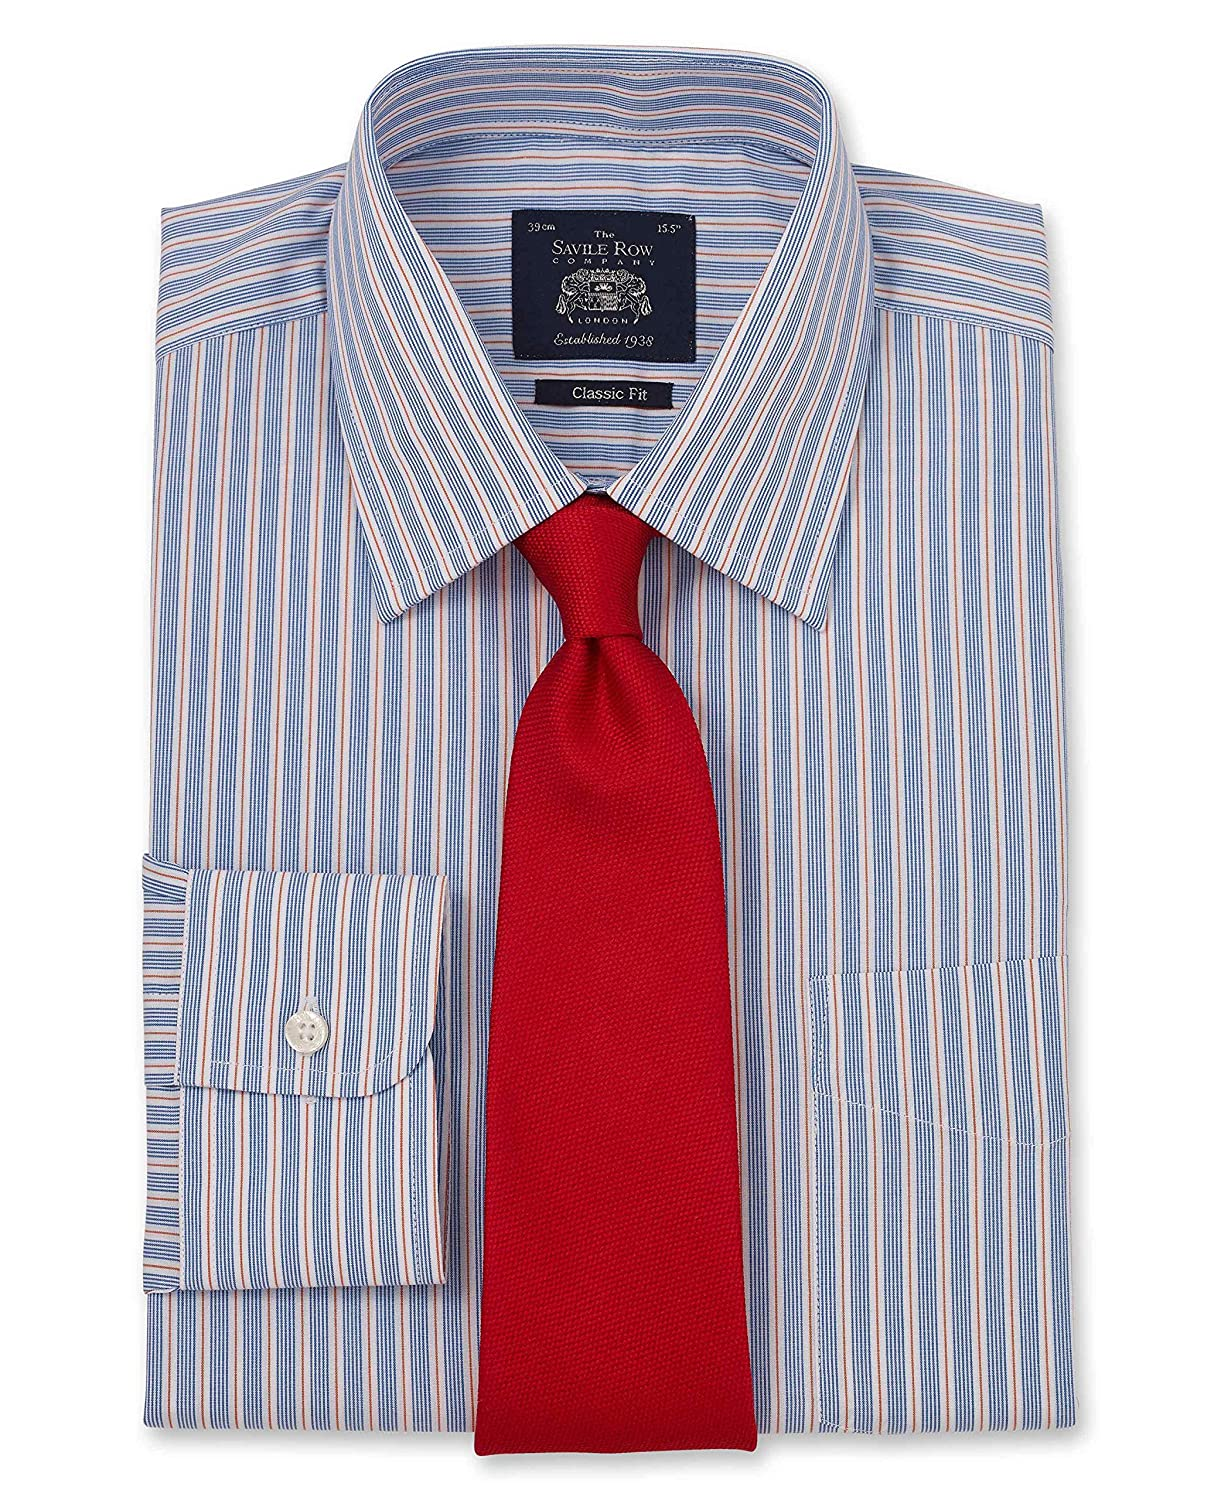 Savile Row Men's Navy Red Multi Stripe Classic Fit Shirt - Single Cuff